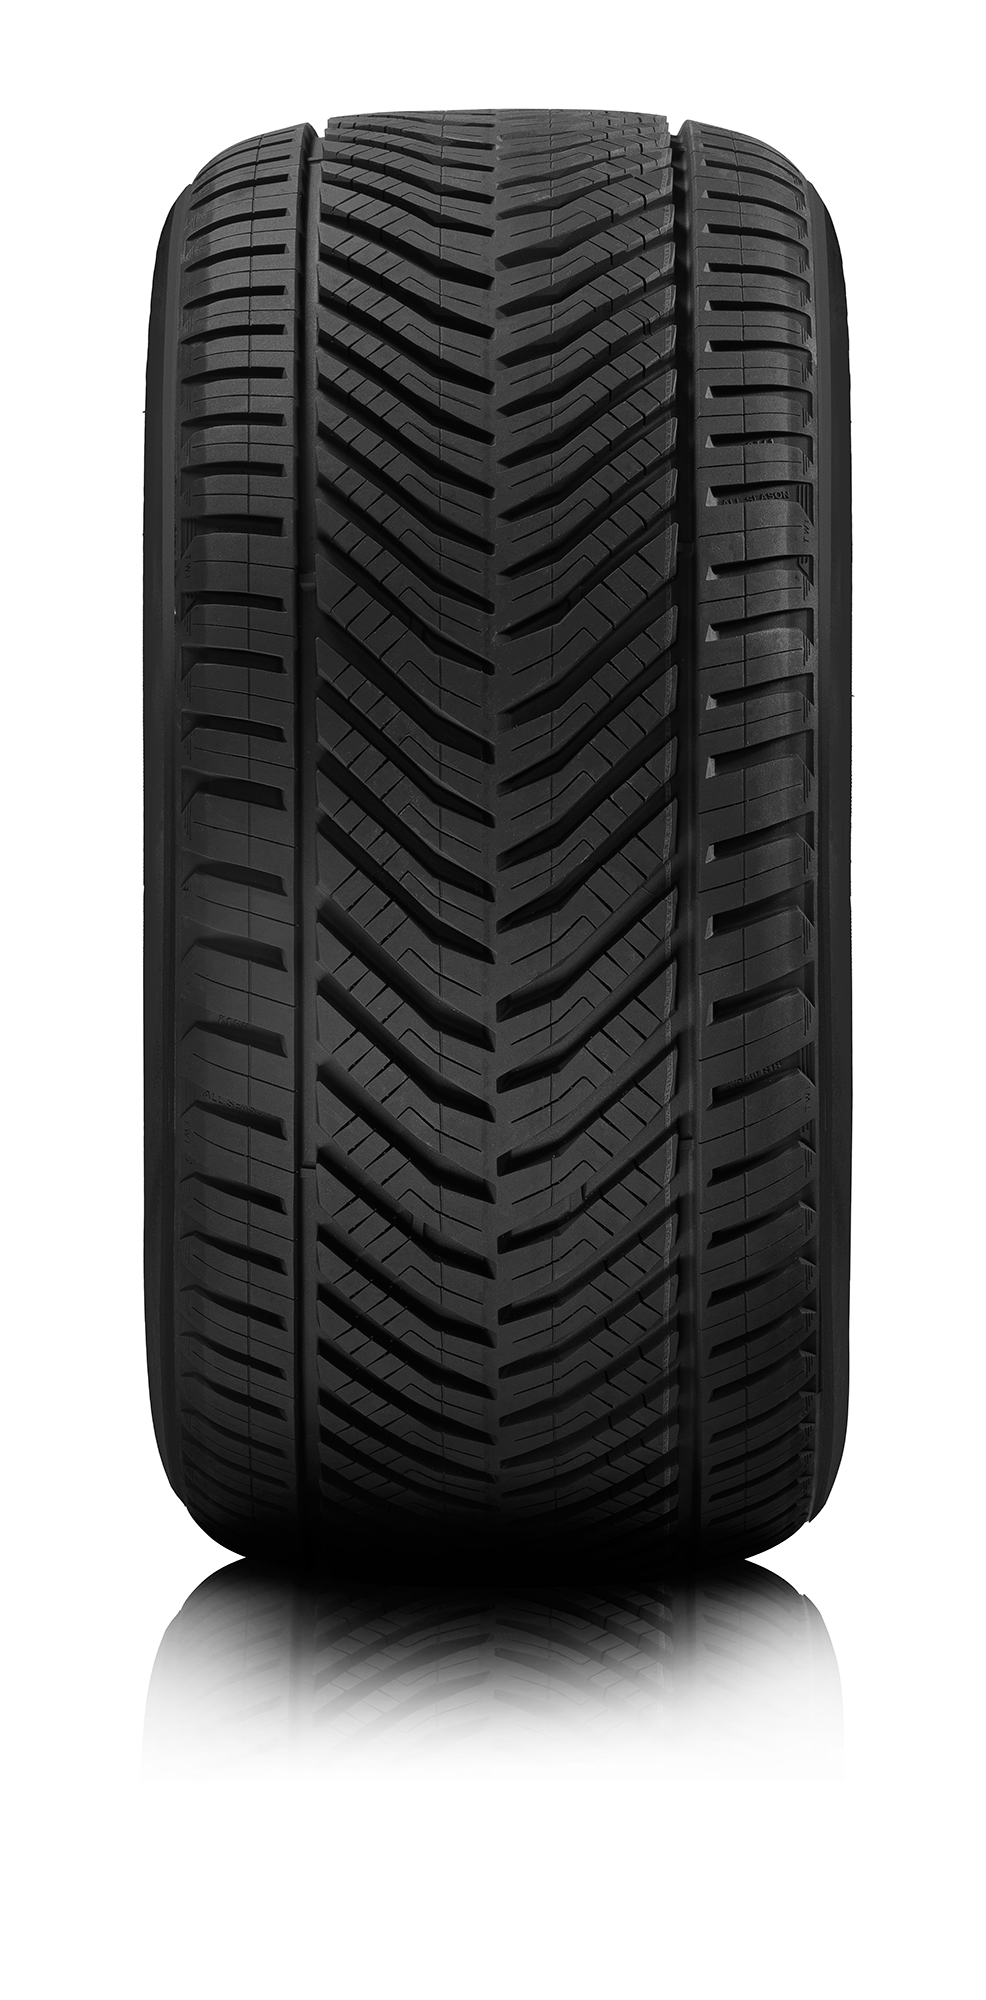 Kormoran ALL SEASON  92 V XL  (630 kg 240 km/h)  185/65R15